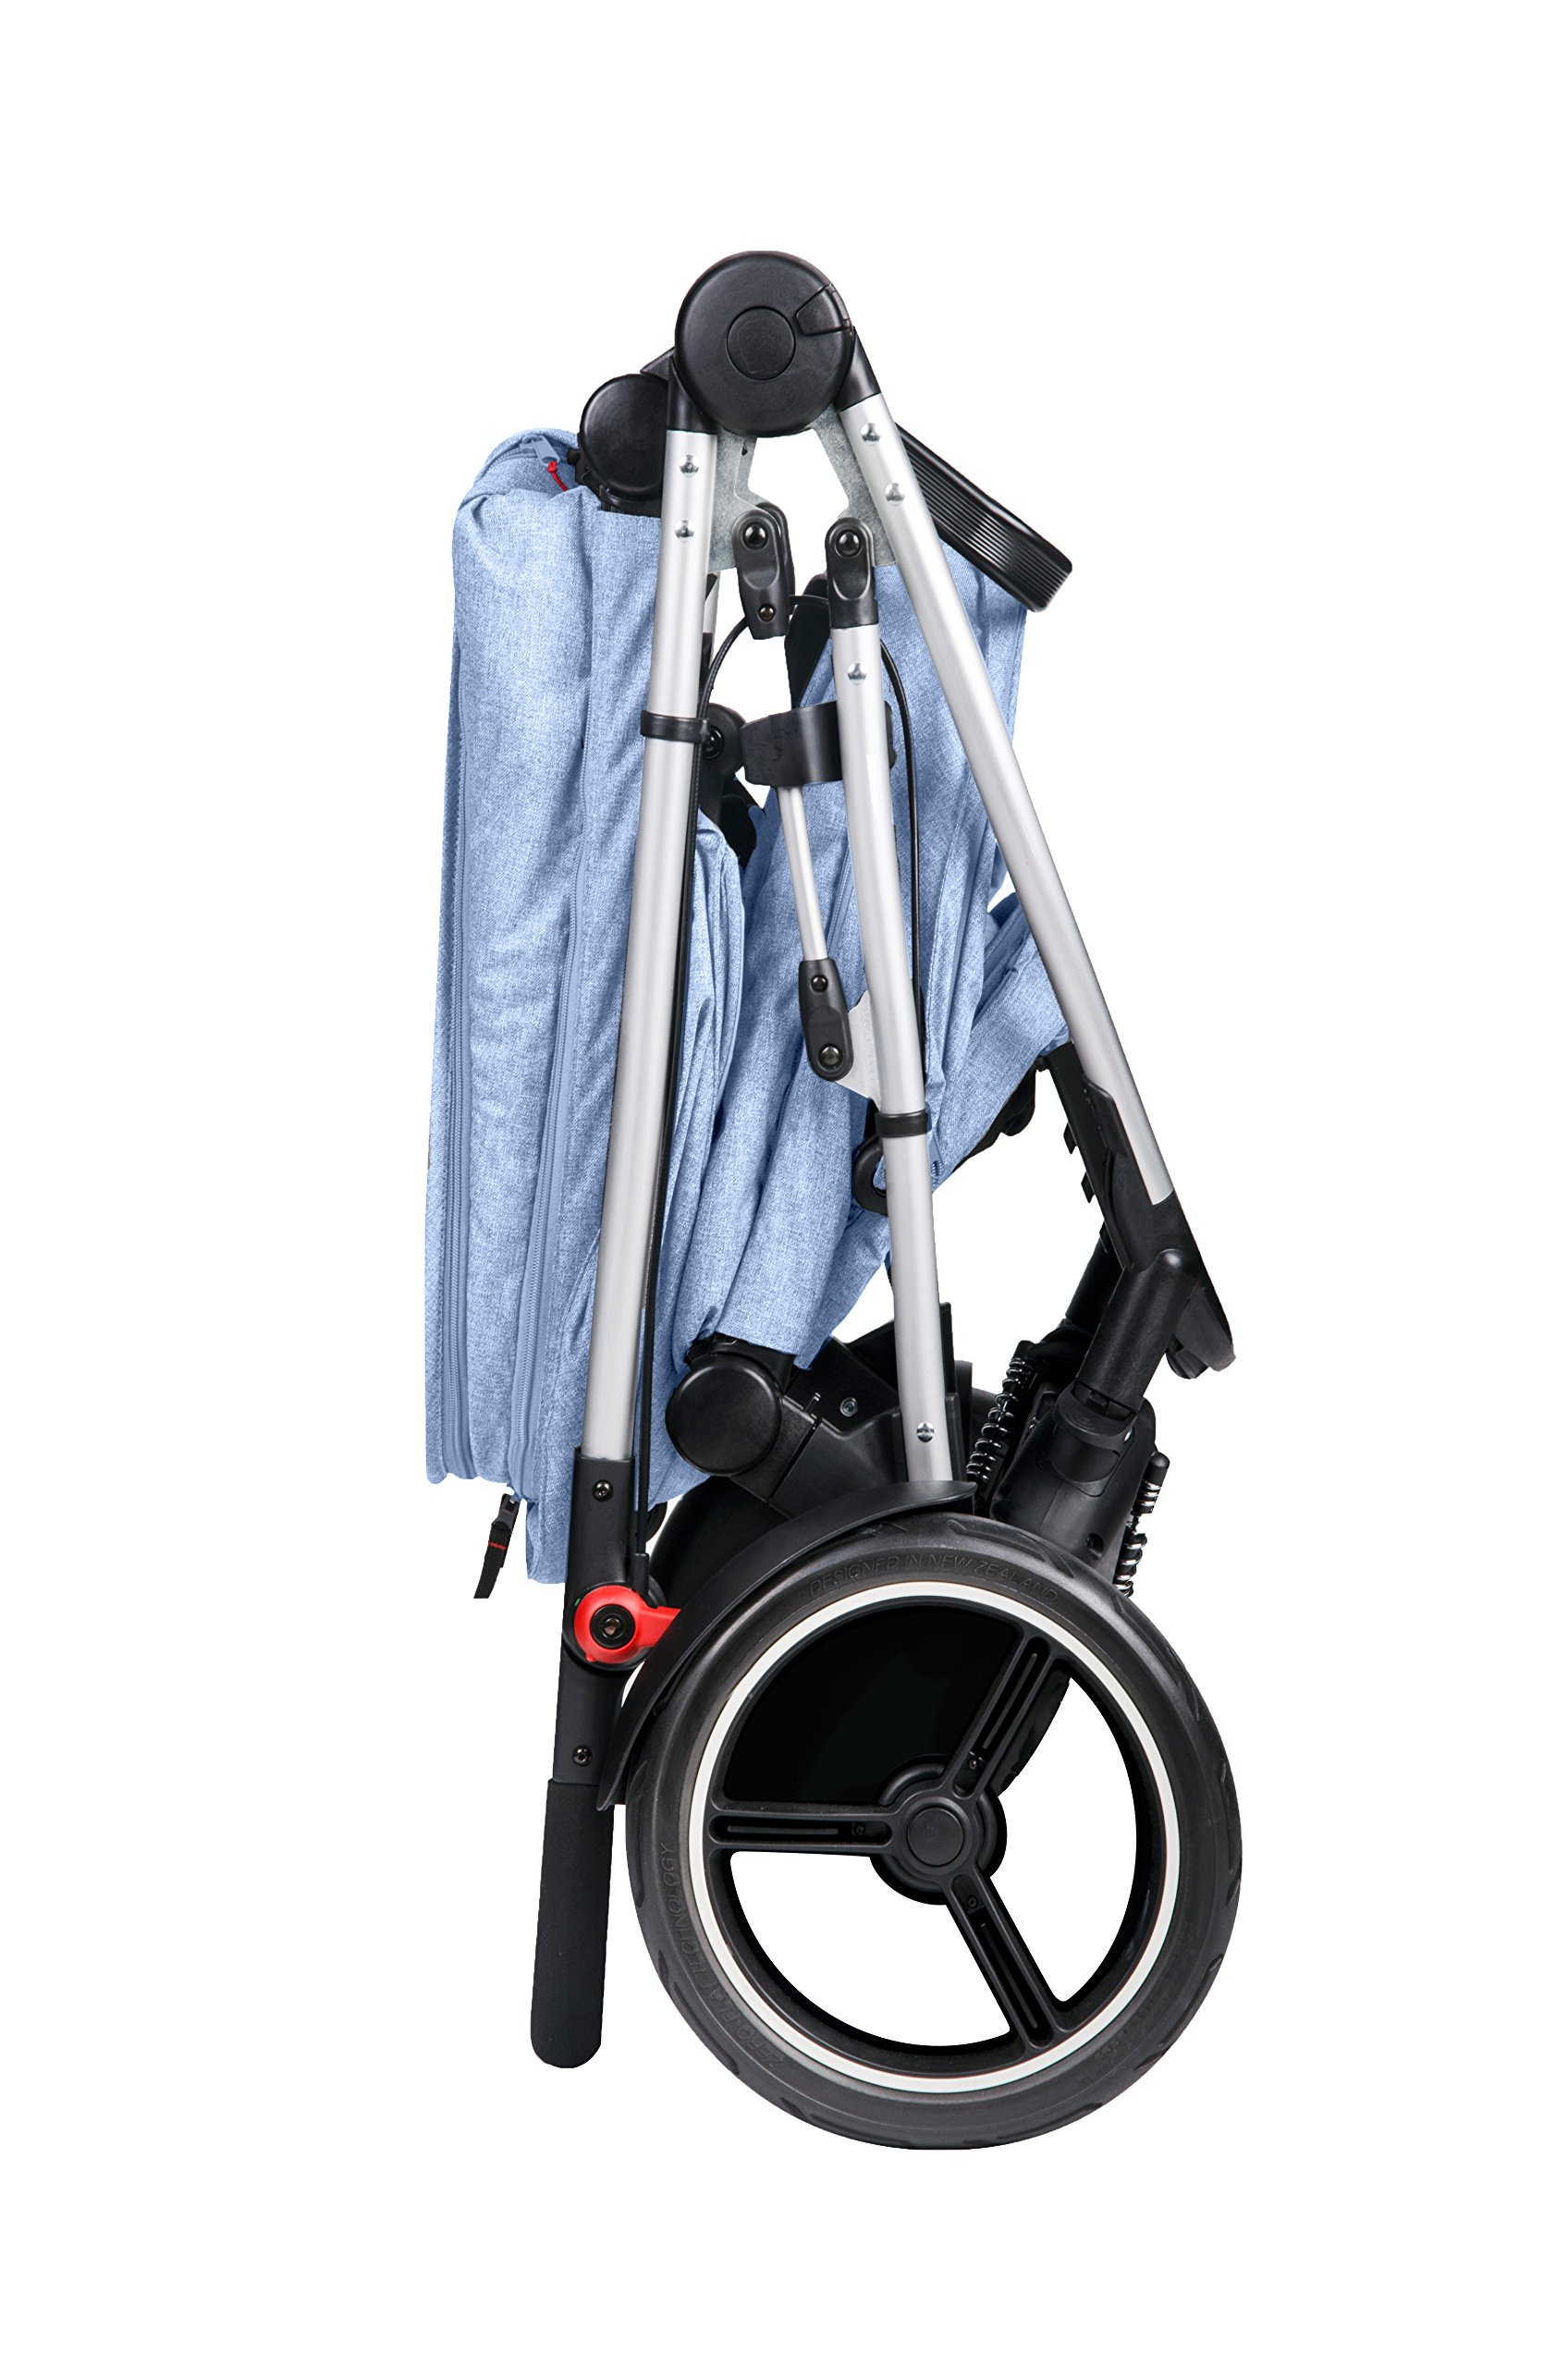 phil&teds Voyager Buggy Pushchair, Blue phil&teds 4-in-1 modular seat with four modes: parent facing, forward facing, lay flat bassinet (on buggy) and free standing bassinet (off buggy) Revolutionary stand fold with 2 seats on Double kit easily converts to lie flat mode as well 6